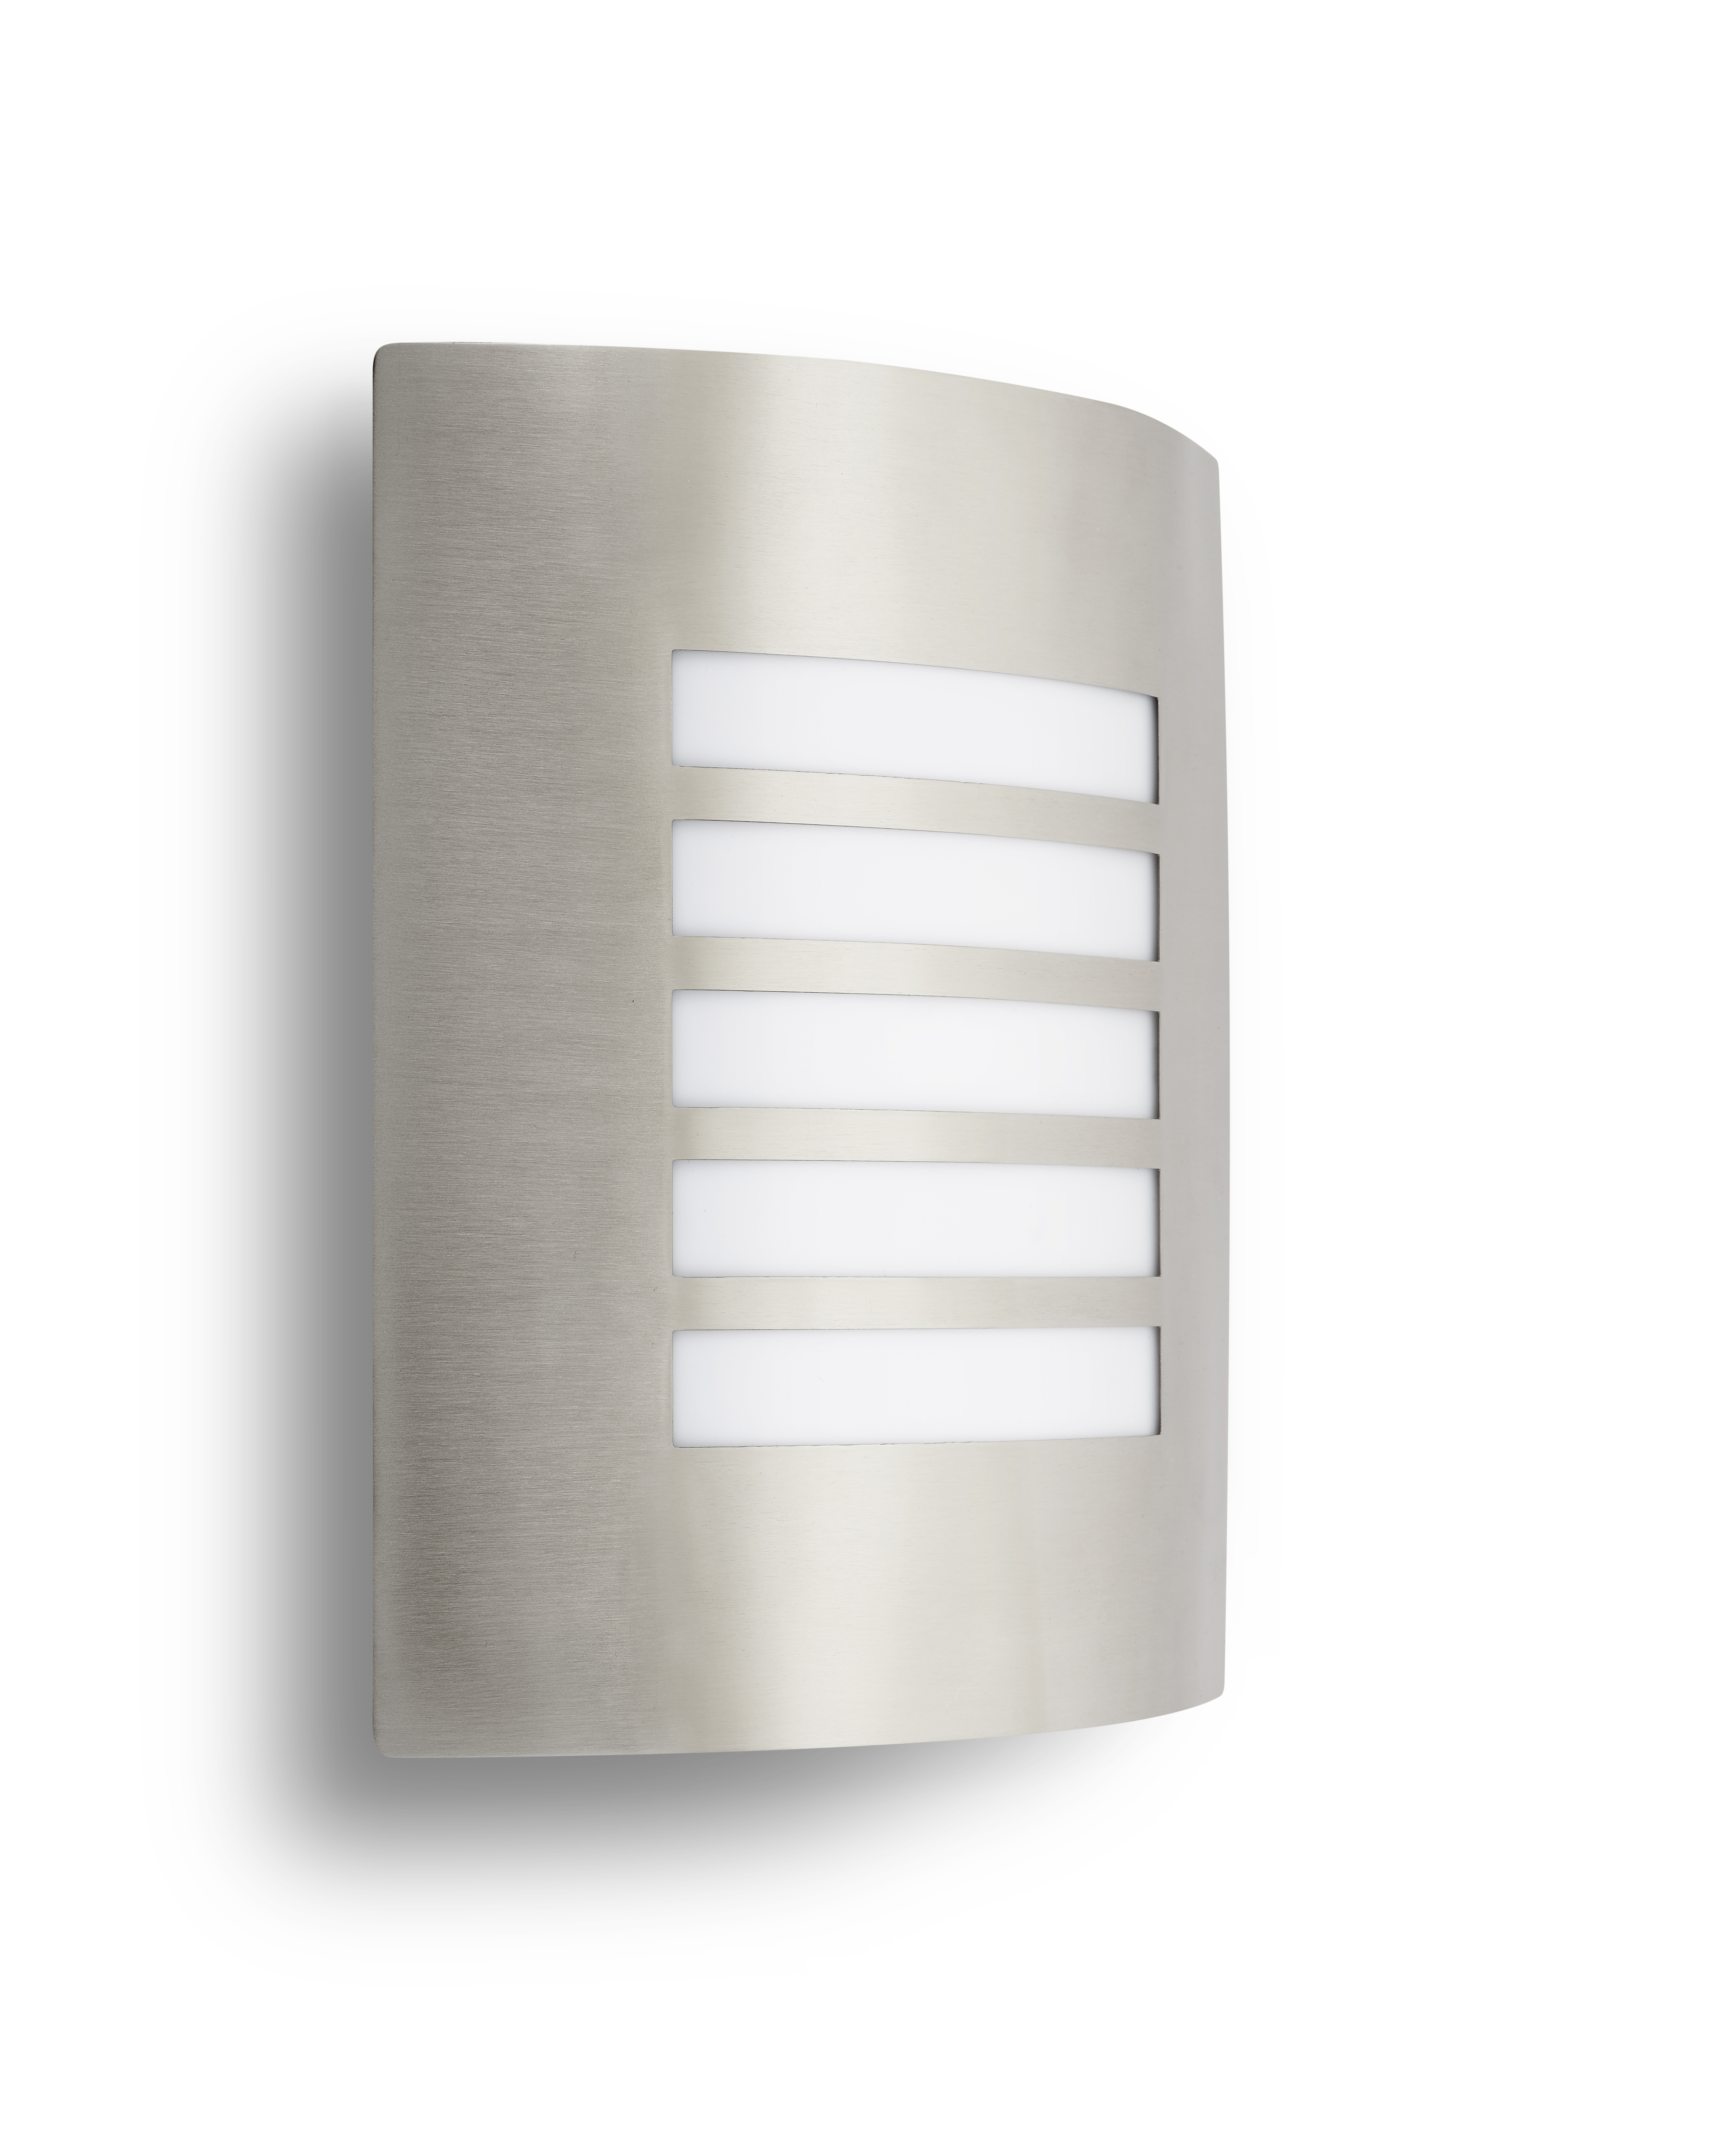 Wall light 1xE27 stainless steel